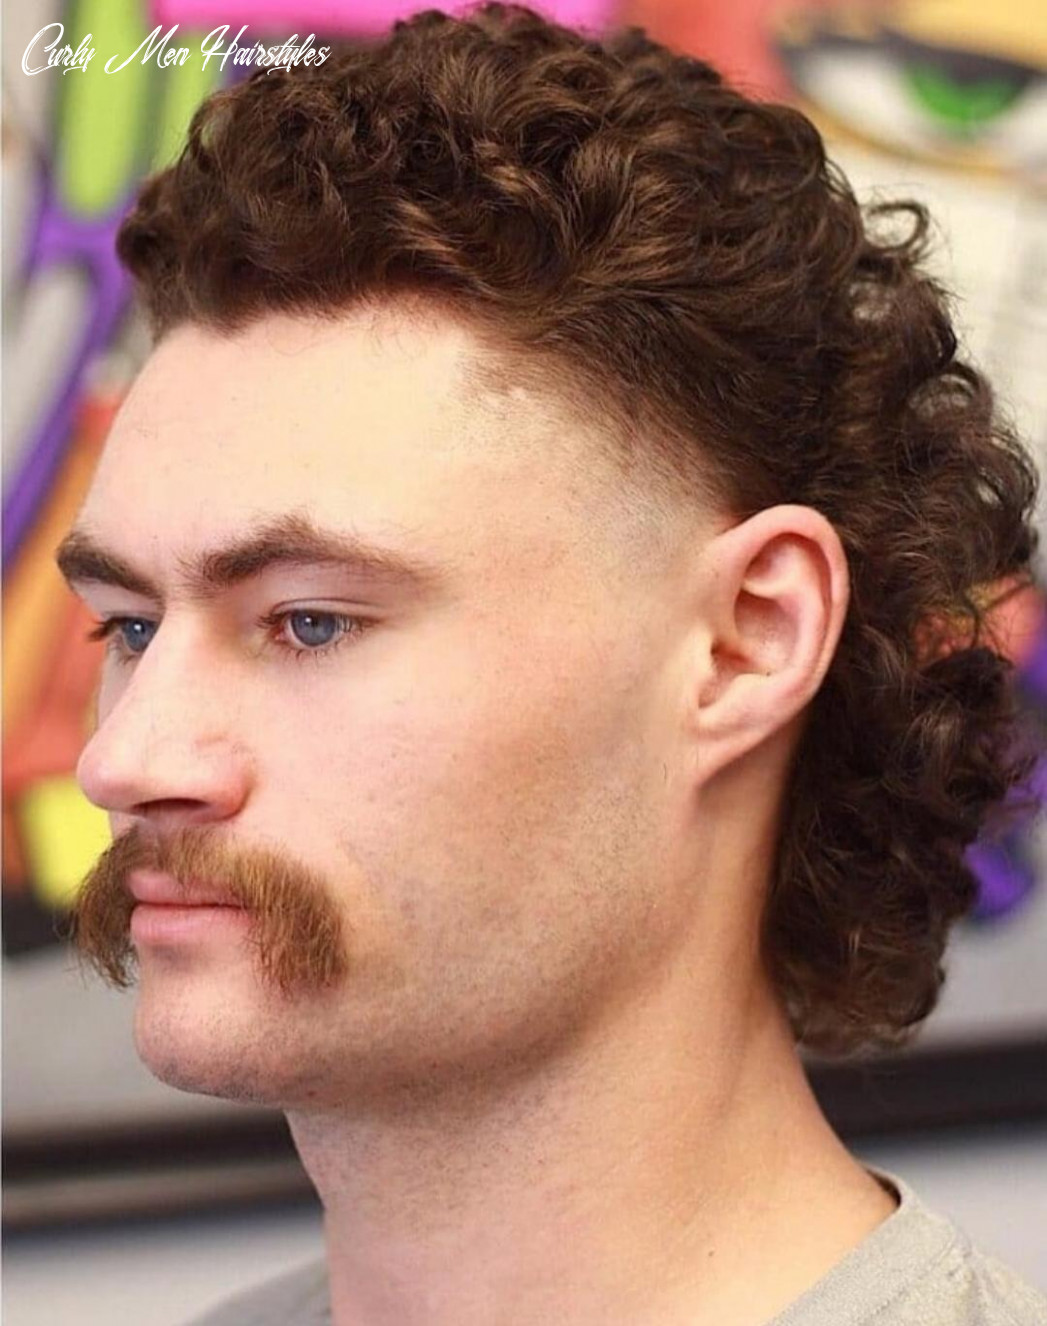 Was searching for curly mens hairstyles : justfuckmyshitup curly men hairstyles